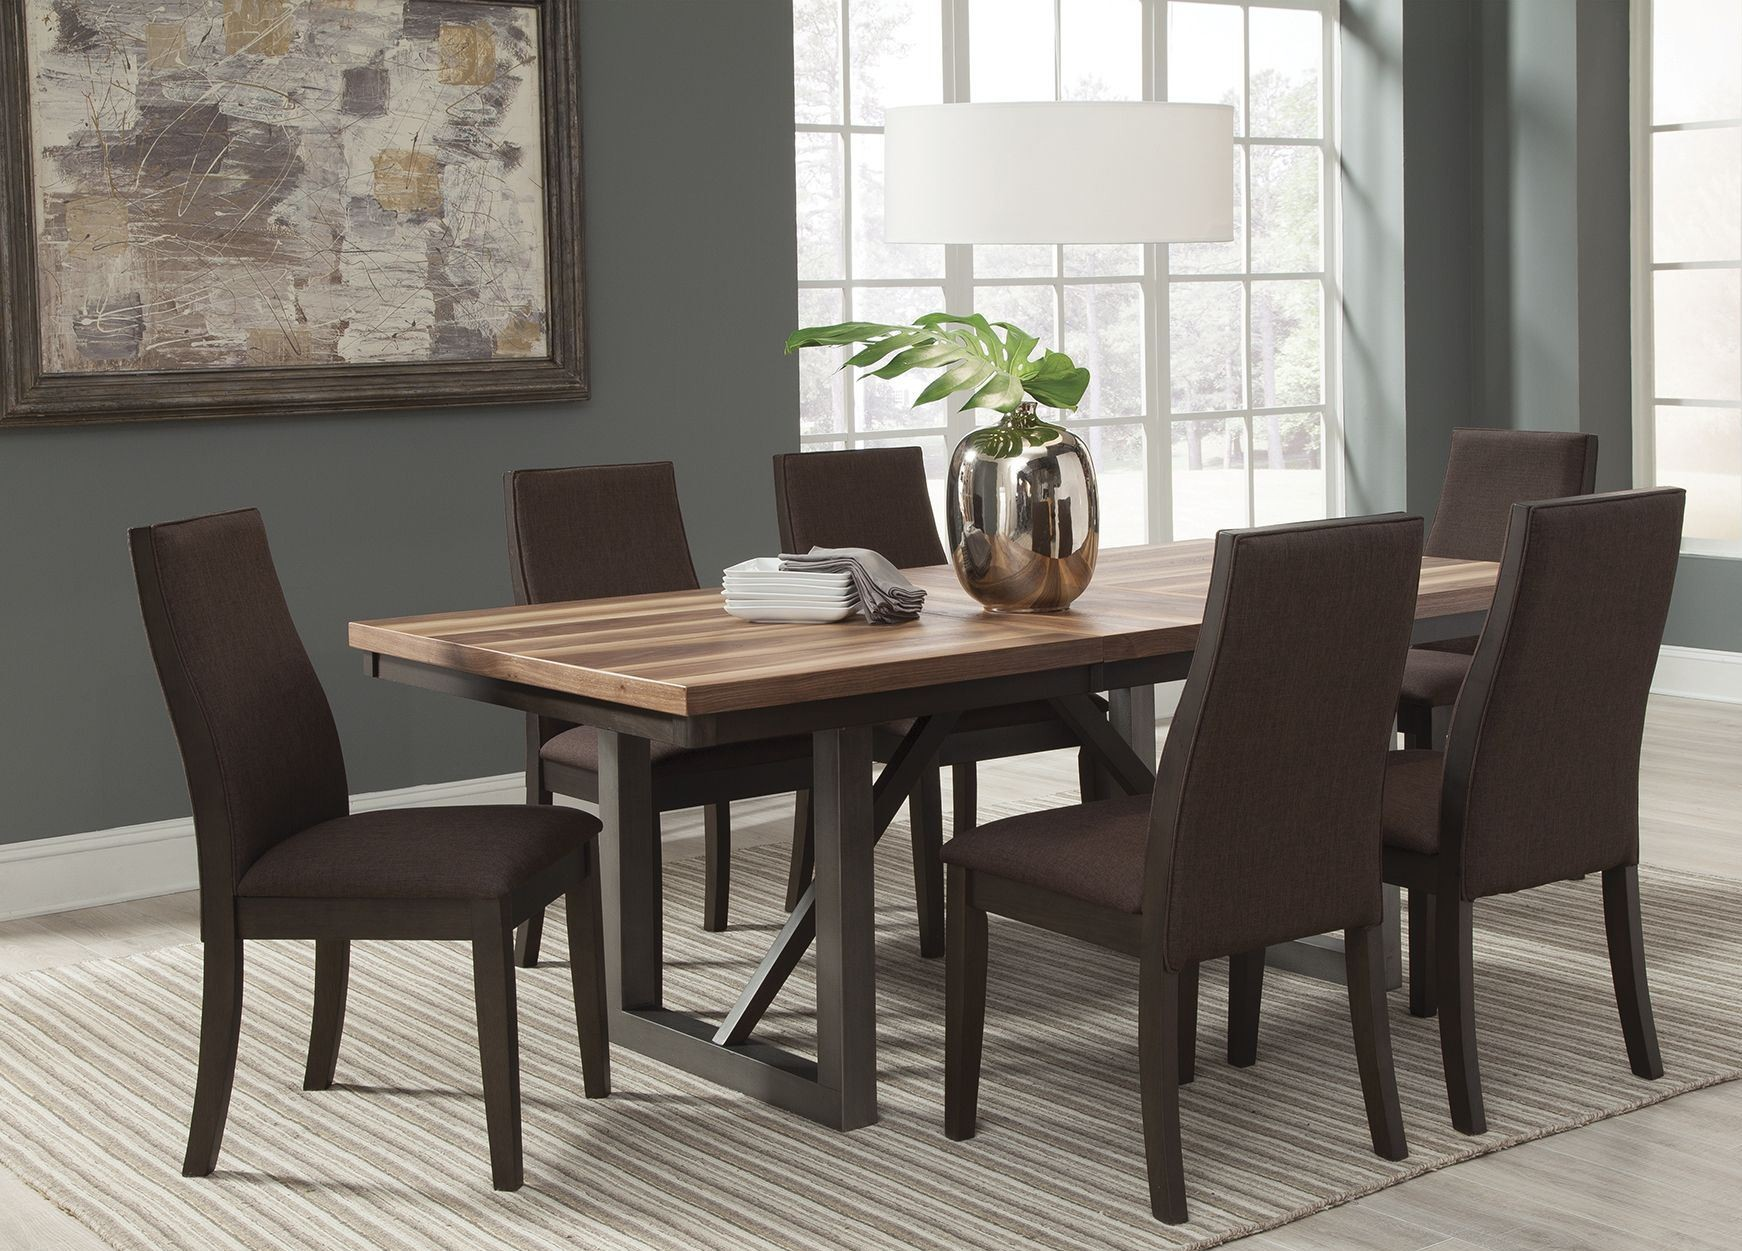 espresso dining room sets | Spring Creek Brown Espresso Extendable Dining Room Set ...